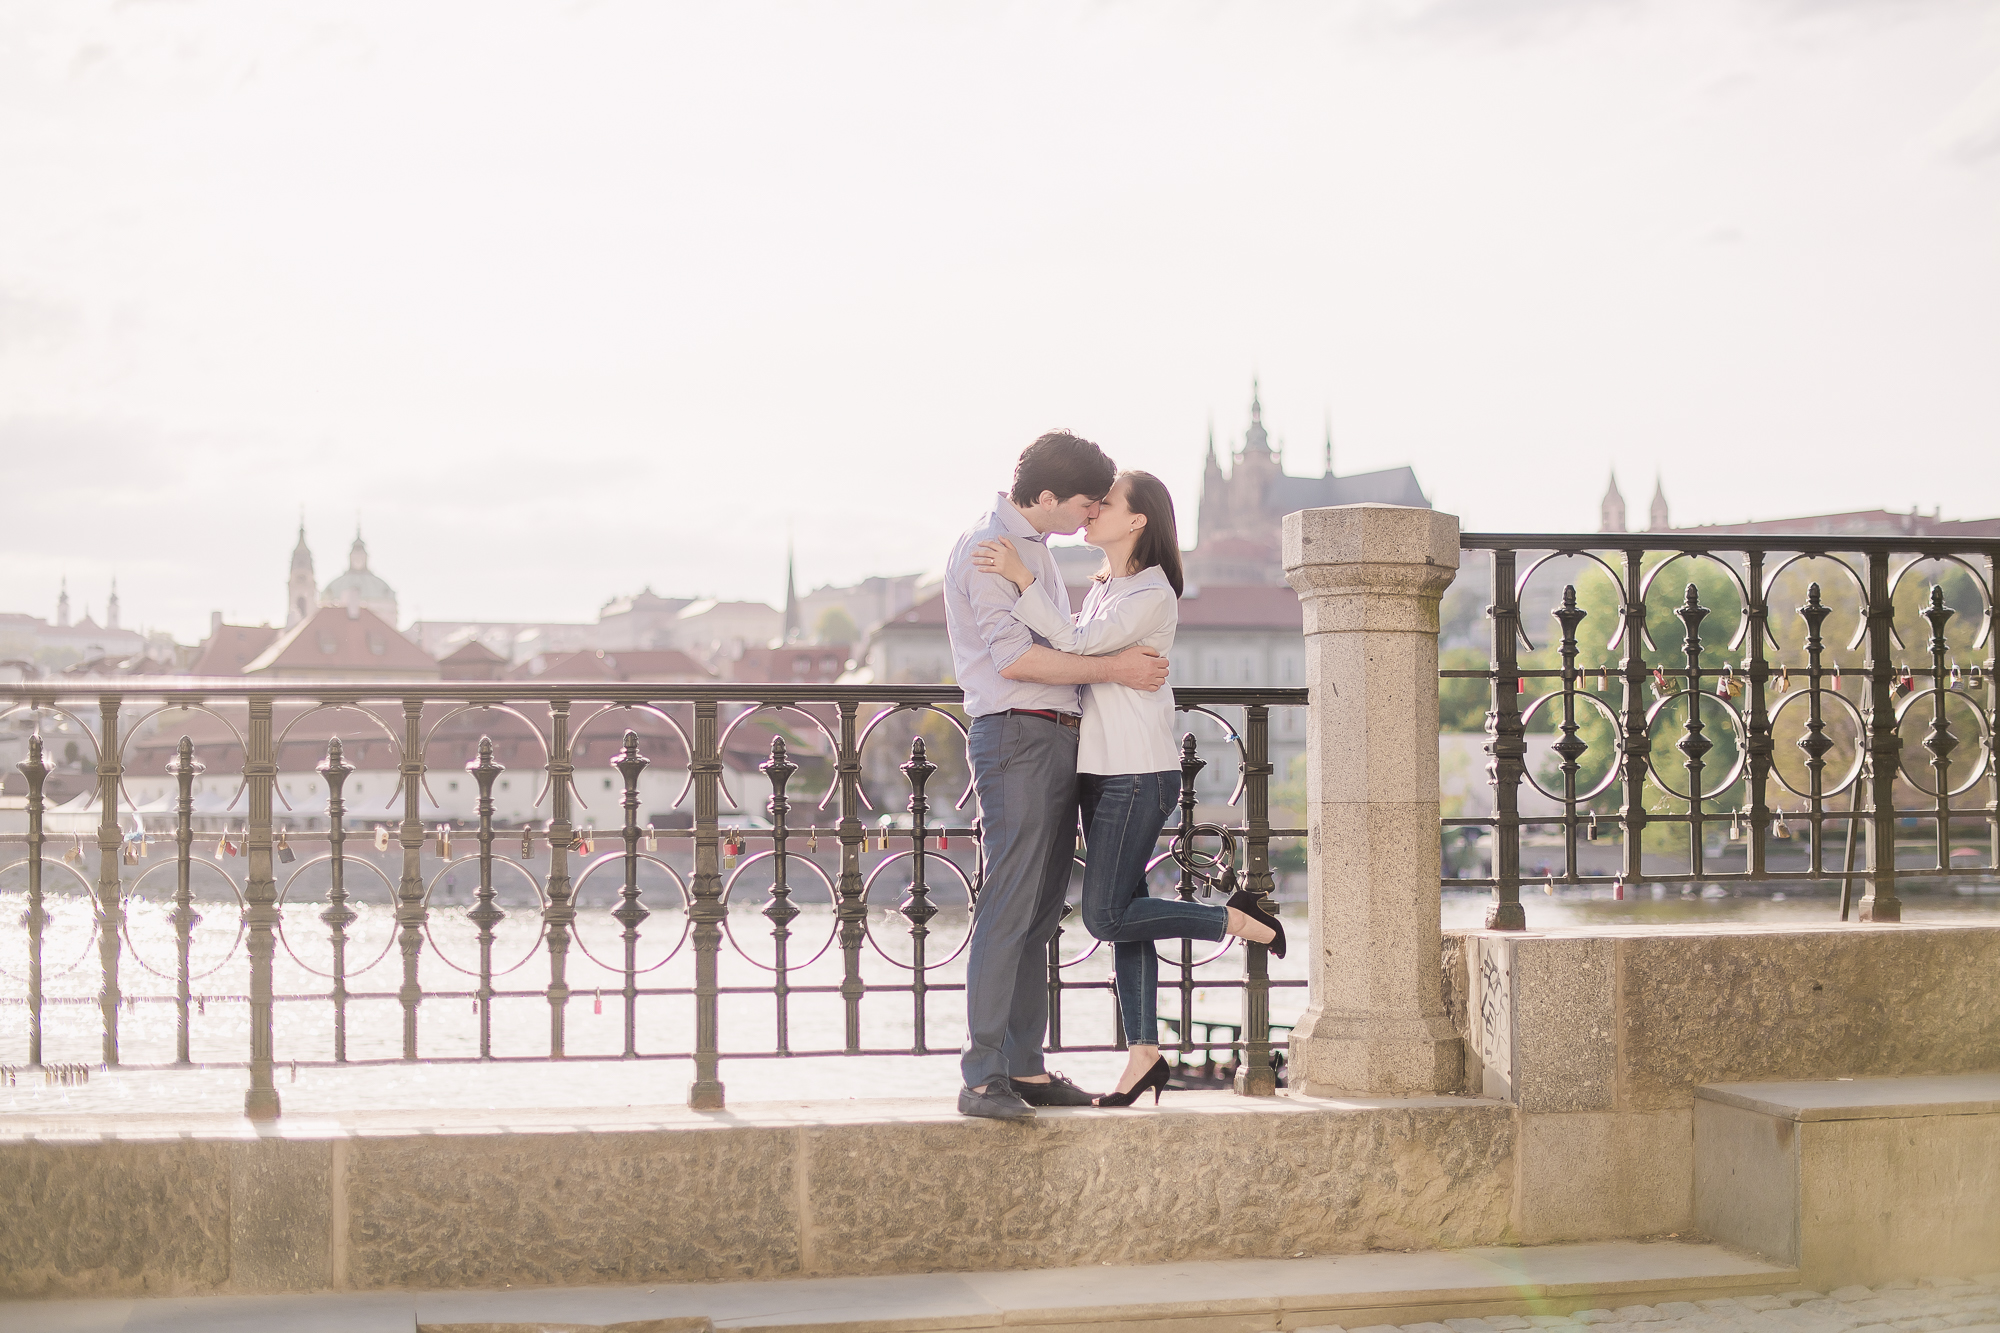 Prague-Wedding-Photography-Matej-Trasak-Engagement-SD-21.jpg